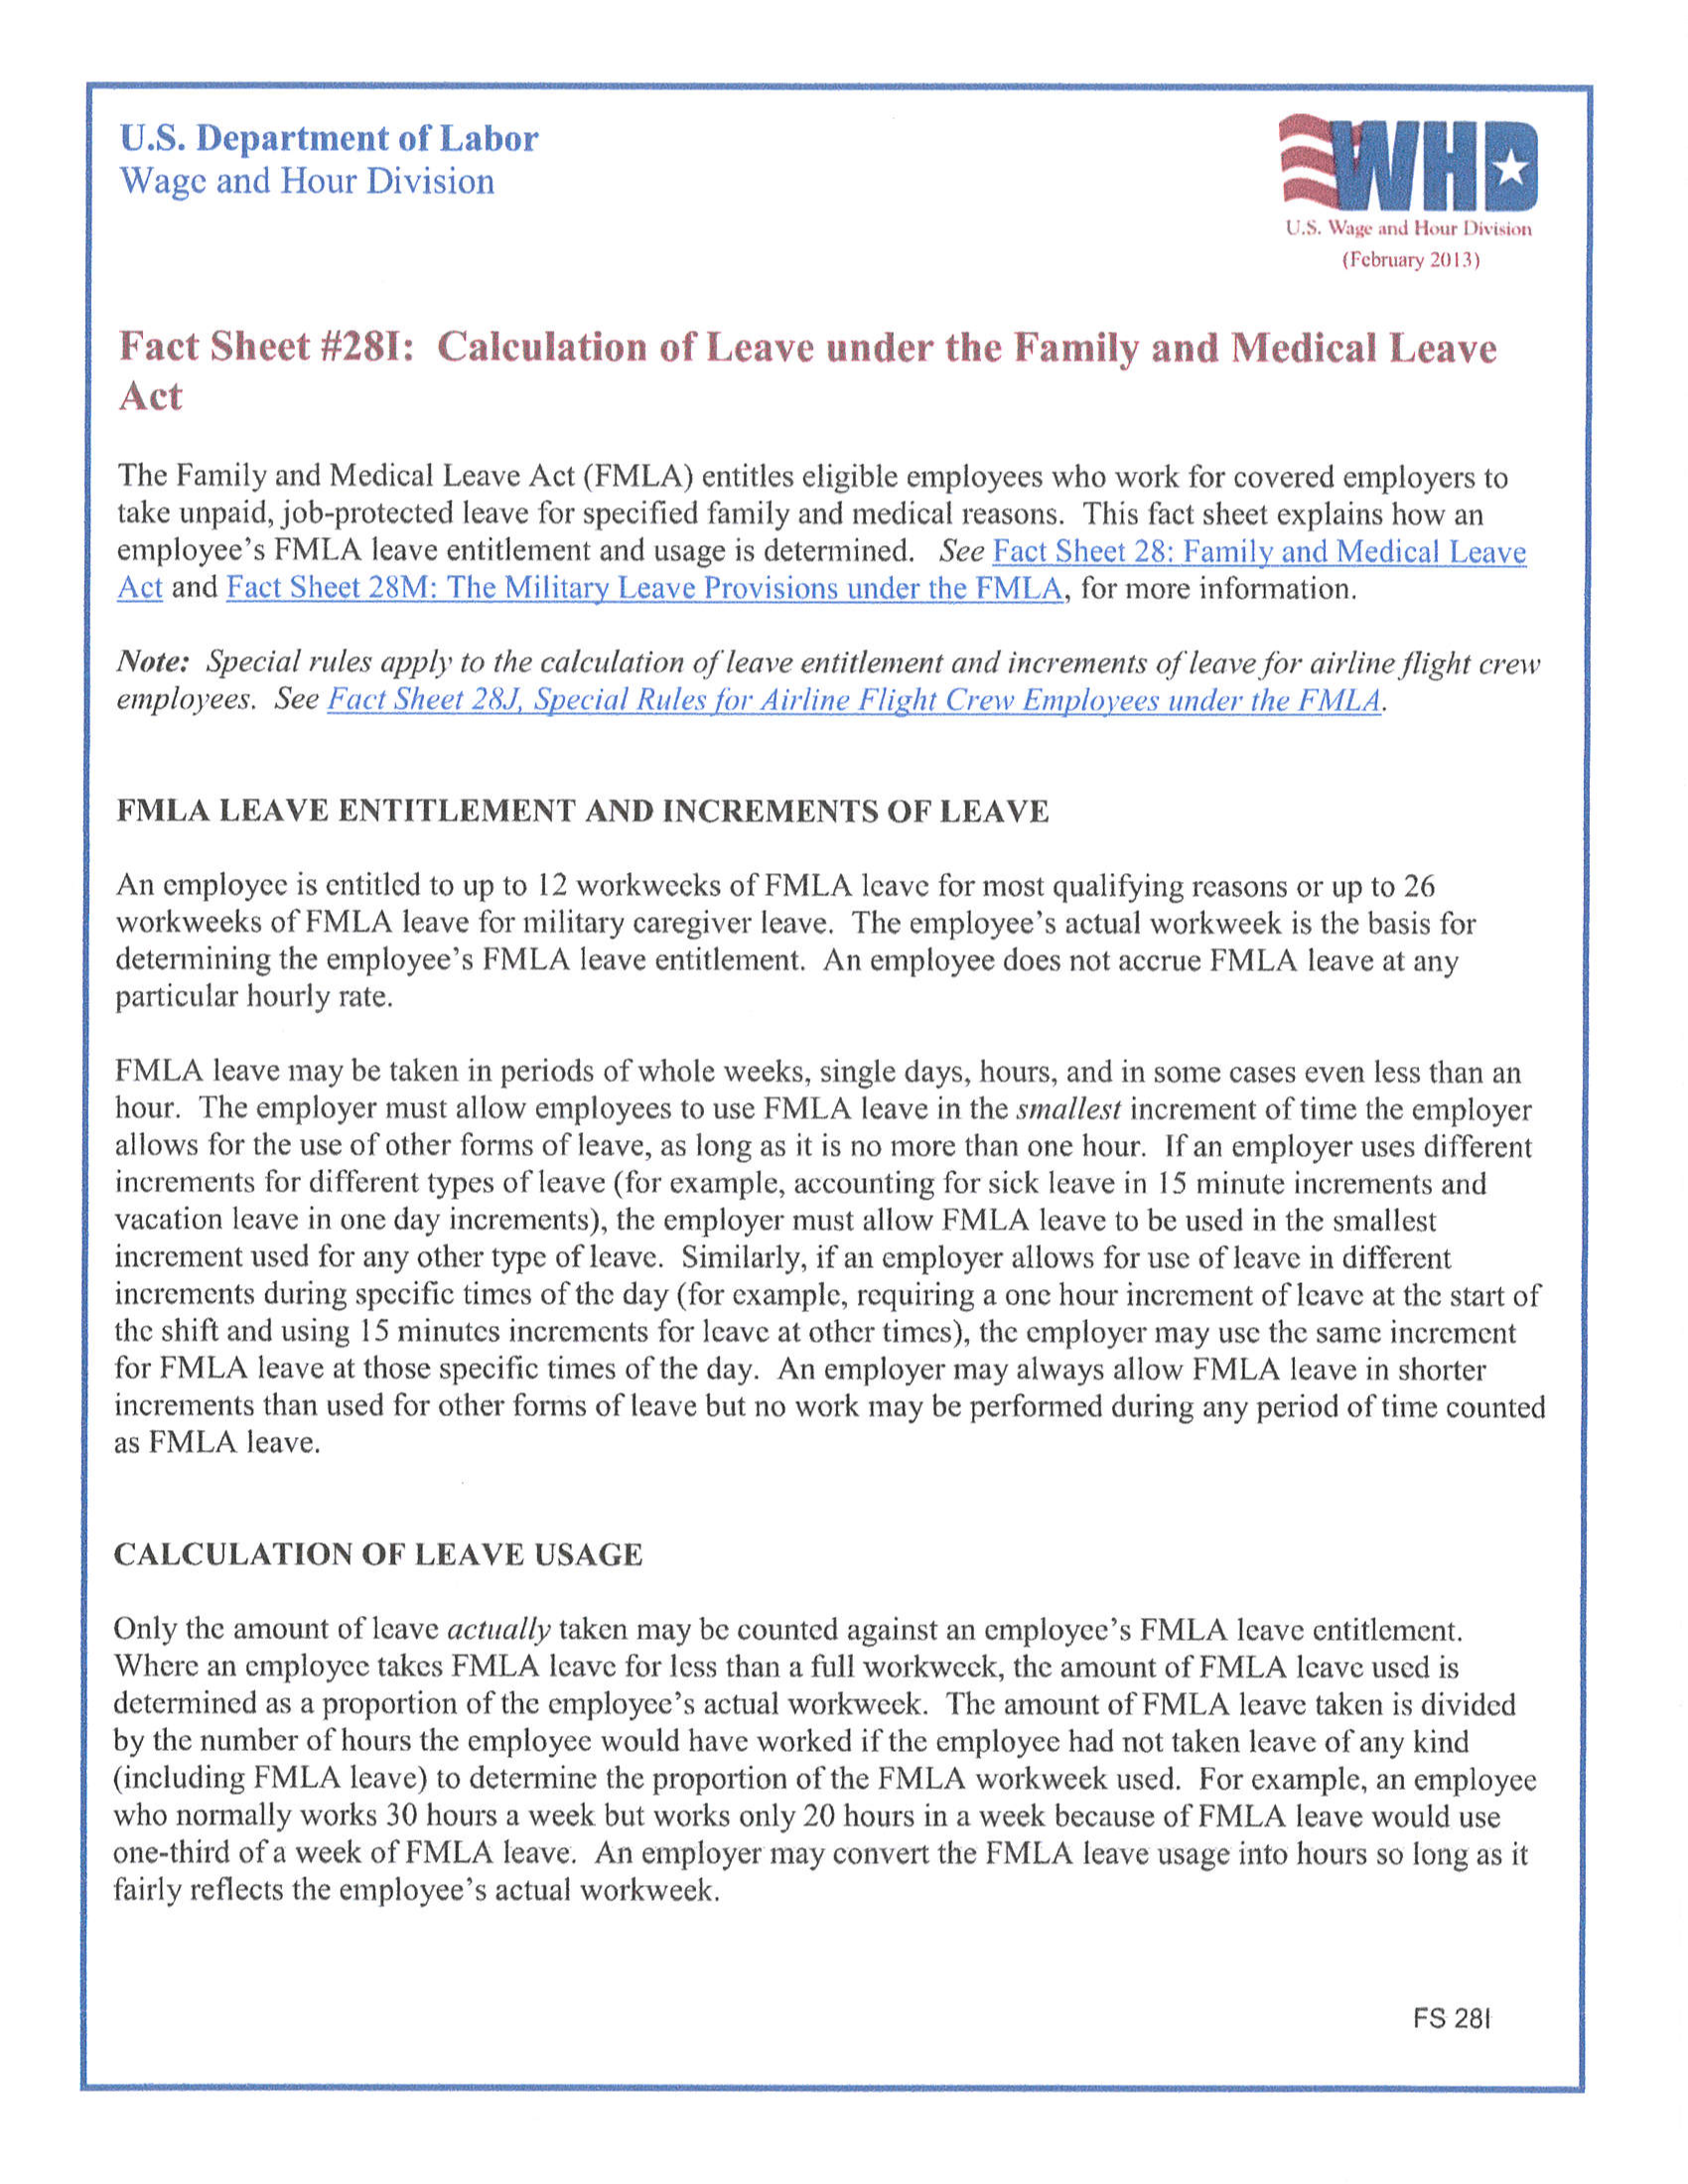 Calculation of Leave under the Family and Medical Leave Act Pg. 1